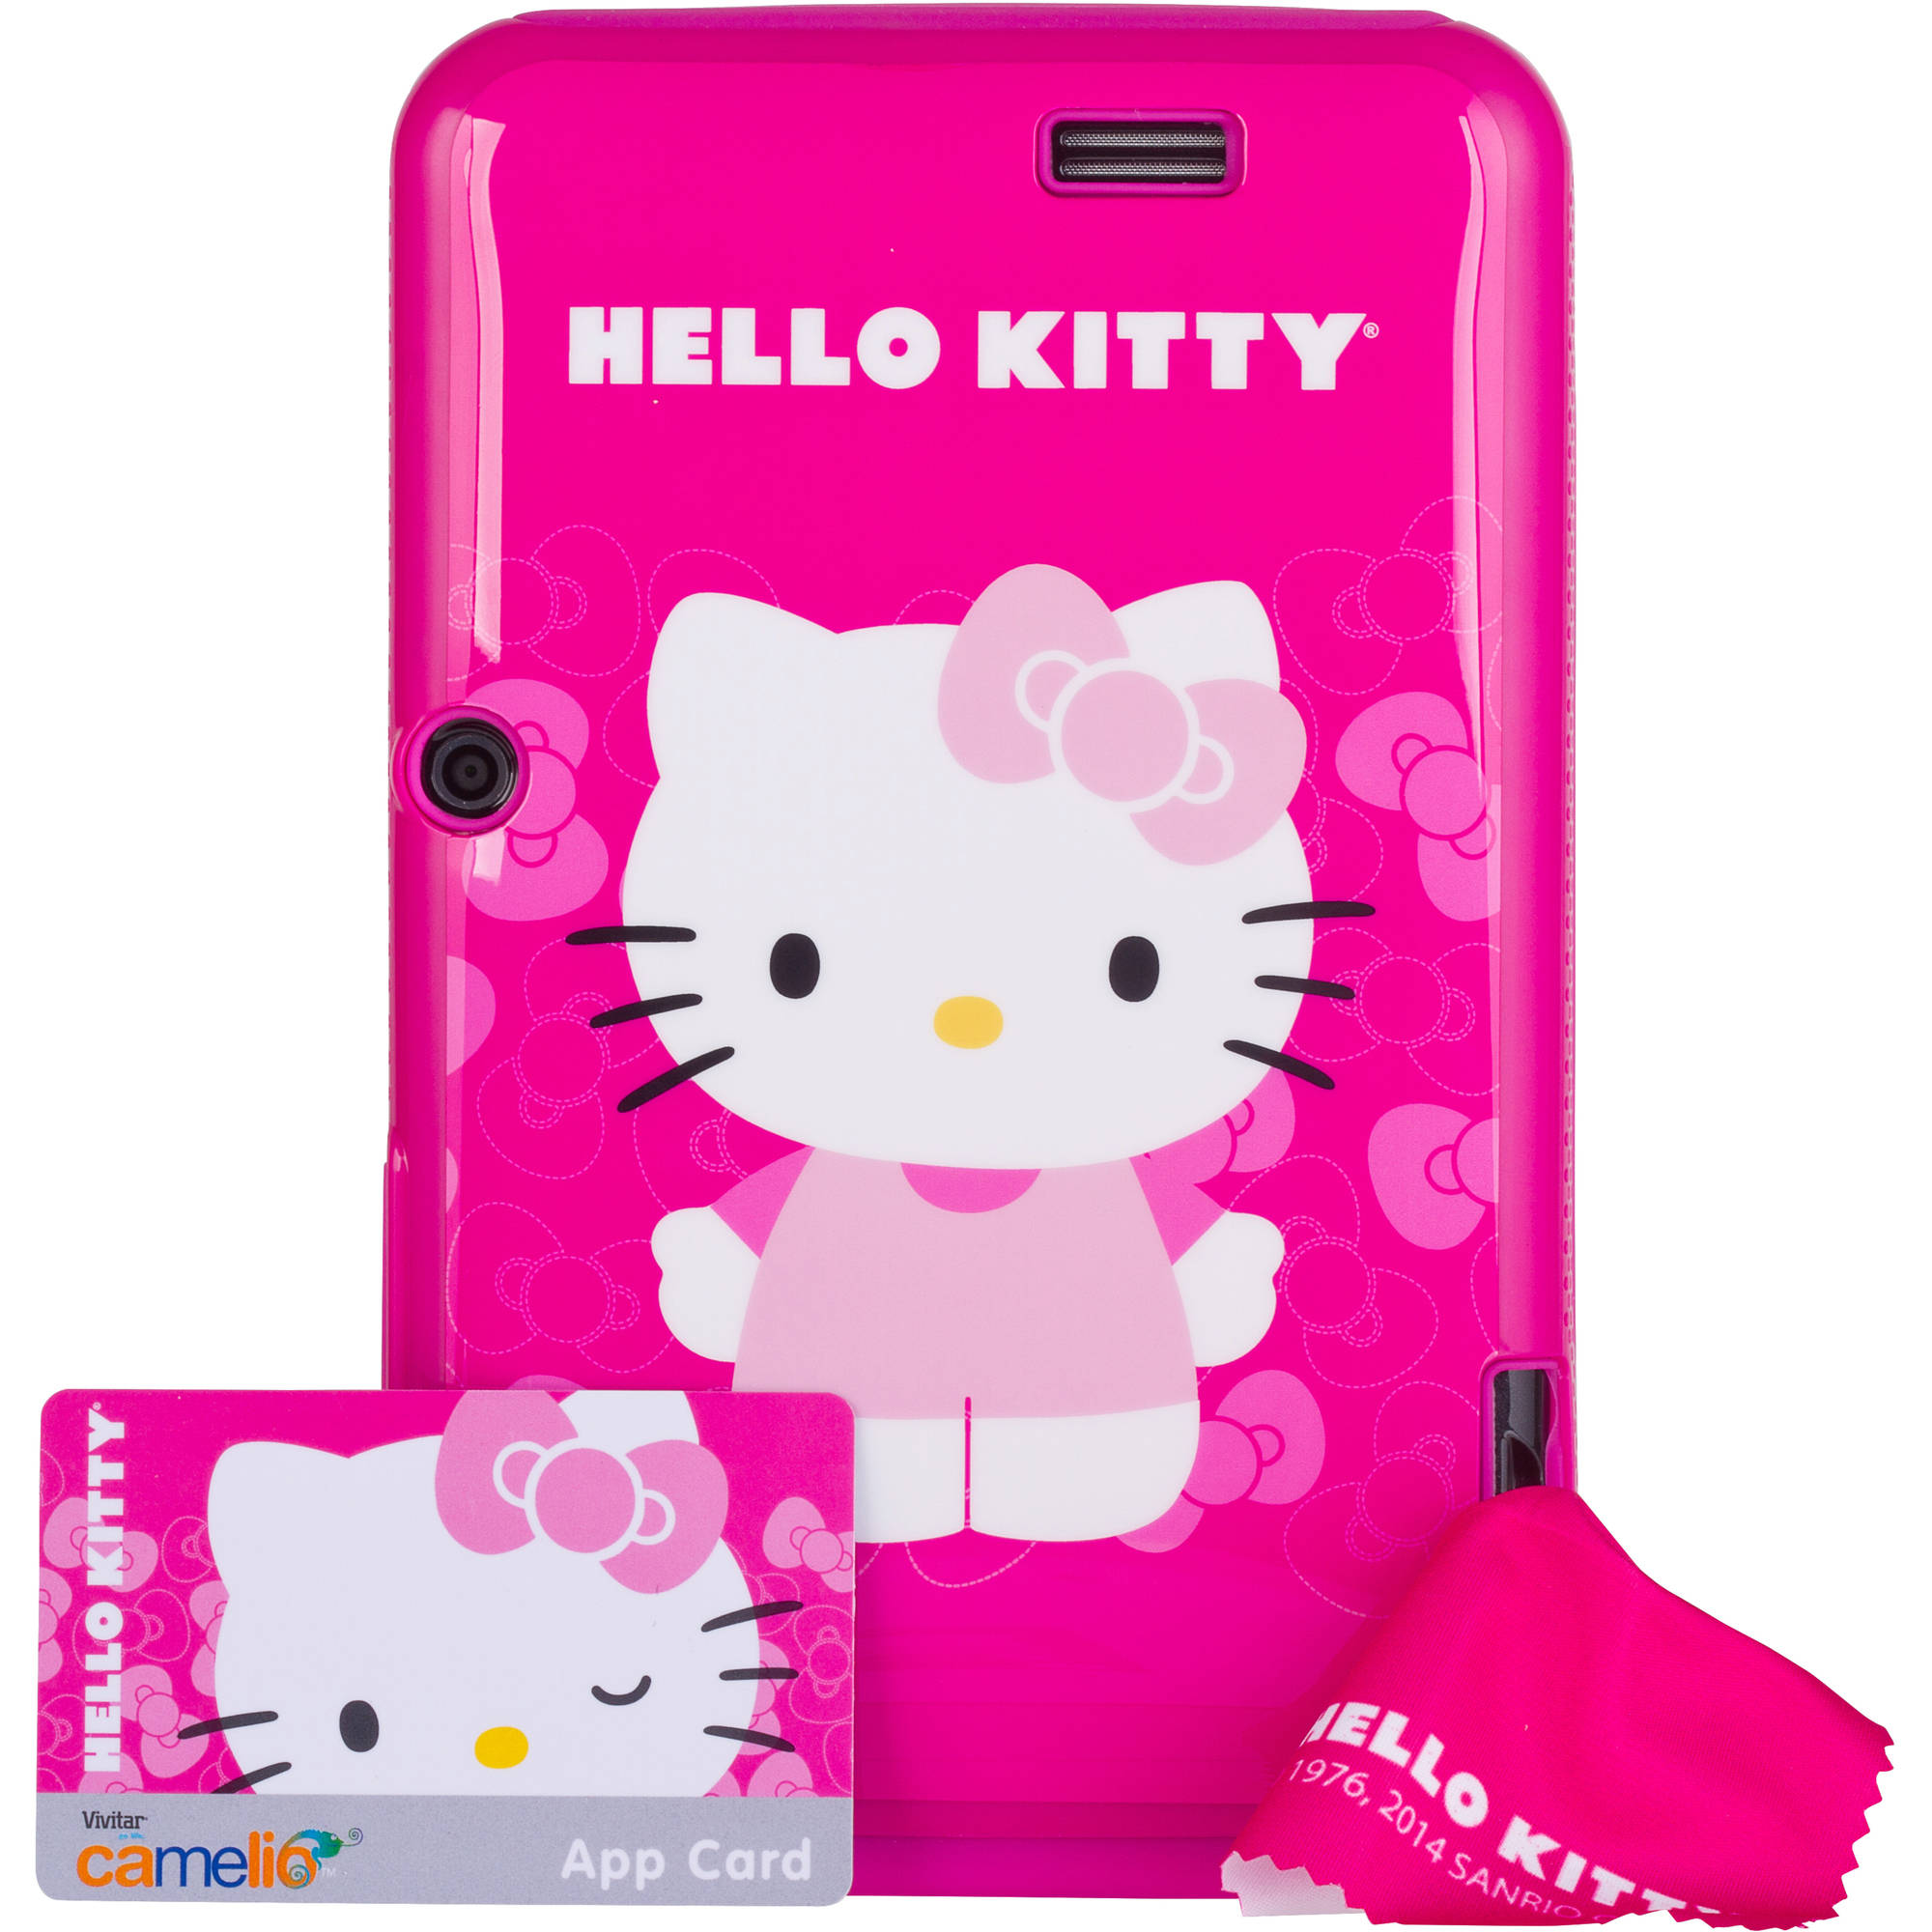 "Vivitar Camelio with WiFi 7"" Touchscreen Tablet PC Featuring Android 4.1 (Jelly Bean) Operating System, Hello Kitty Bundle"